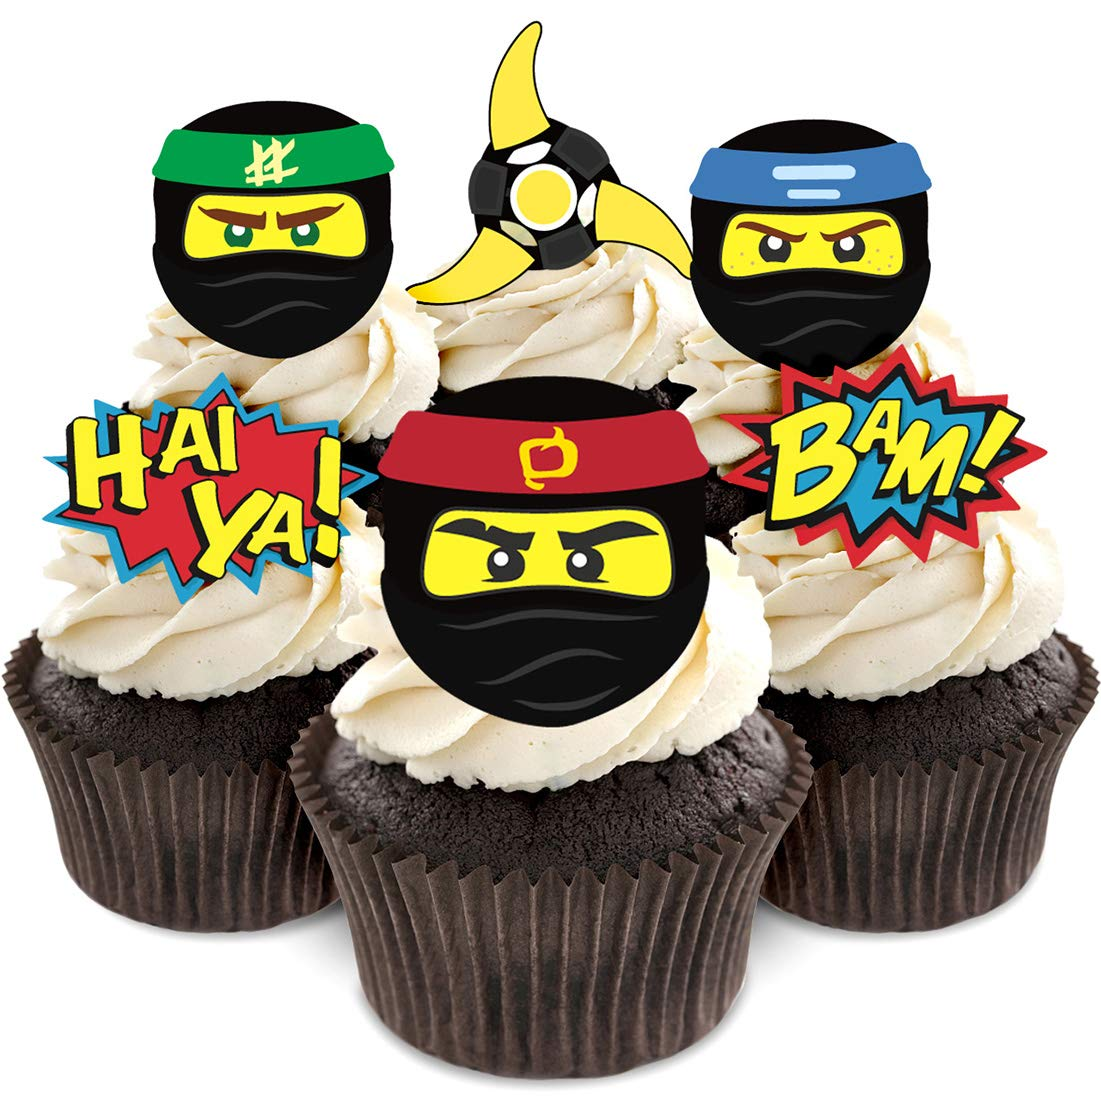 Ninja Cupcake Toppers for Ninja Birthday Party Supplies